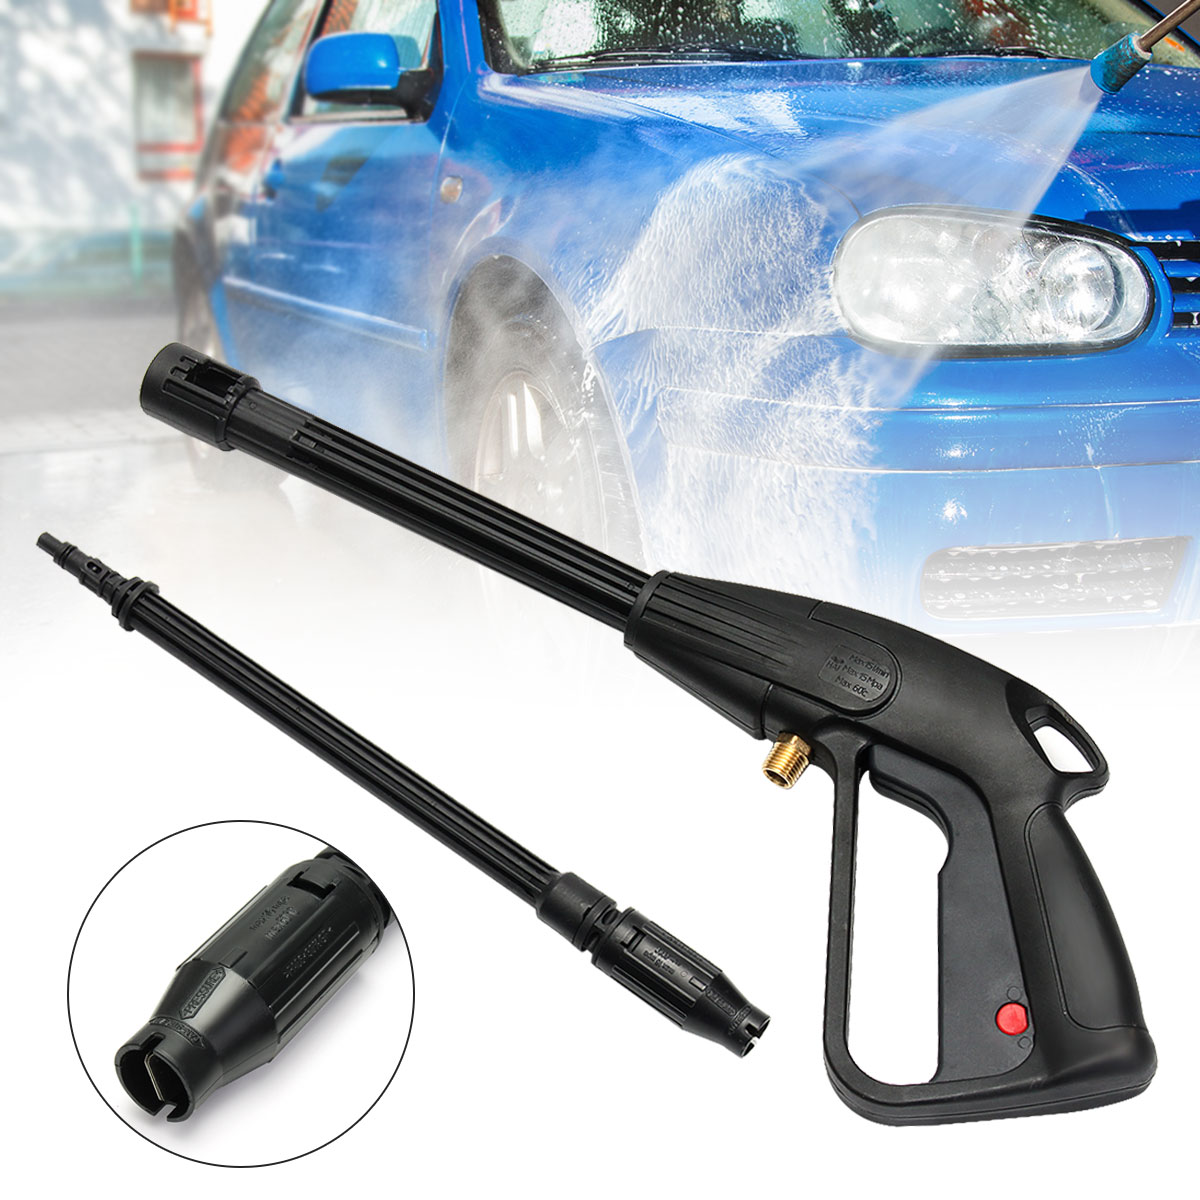 High Pressure Power Washer Spray Nozzle Adjustable Water Gun Home Washing Accessories CX001B for Car Garden Cleaning metal hose nozzle high pressure water spray gun sprayer garden auto car washing